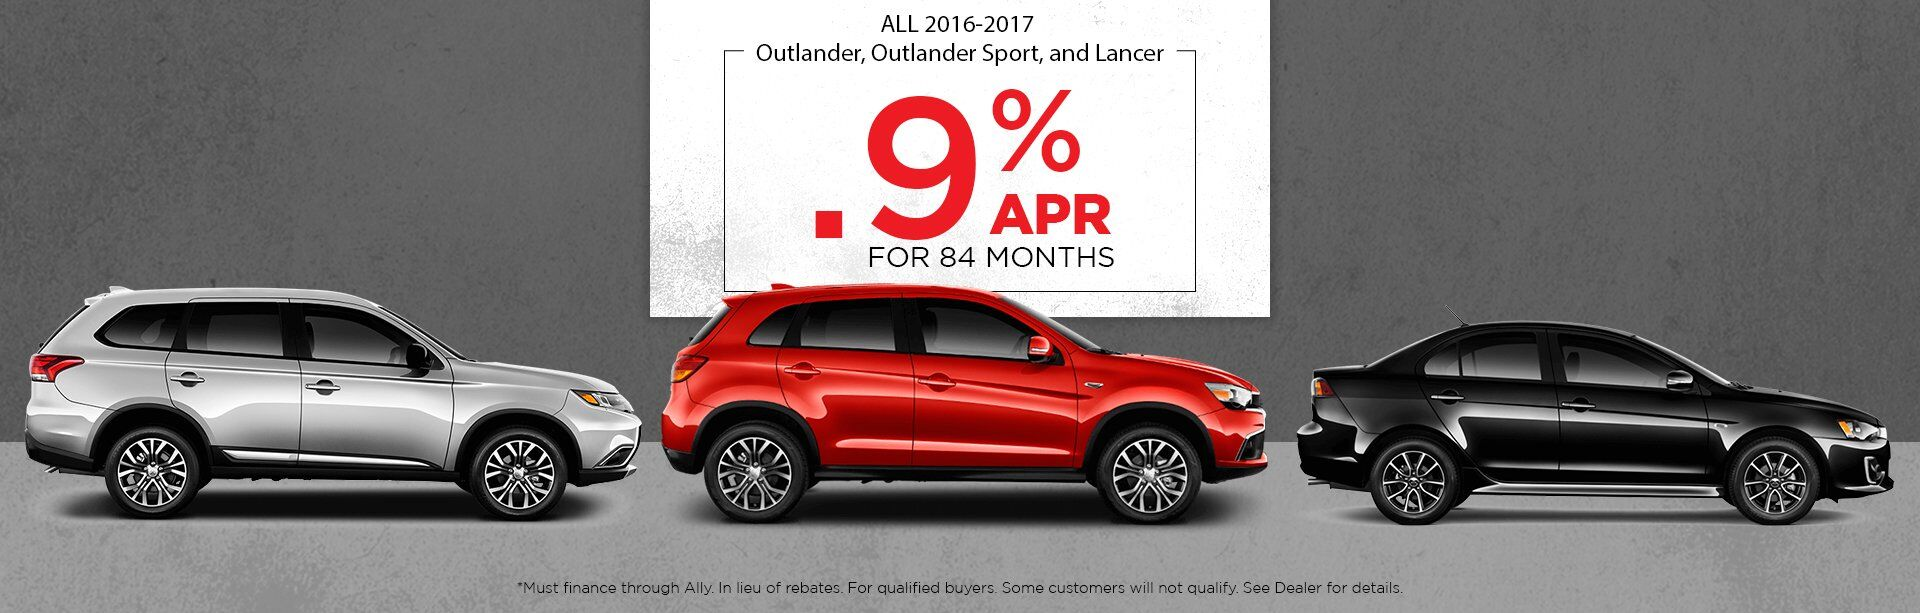 New Outlander, Outlander Sport, and Lancer